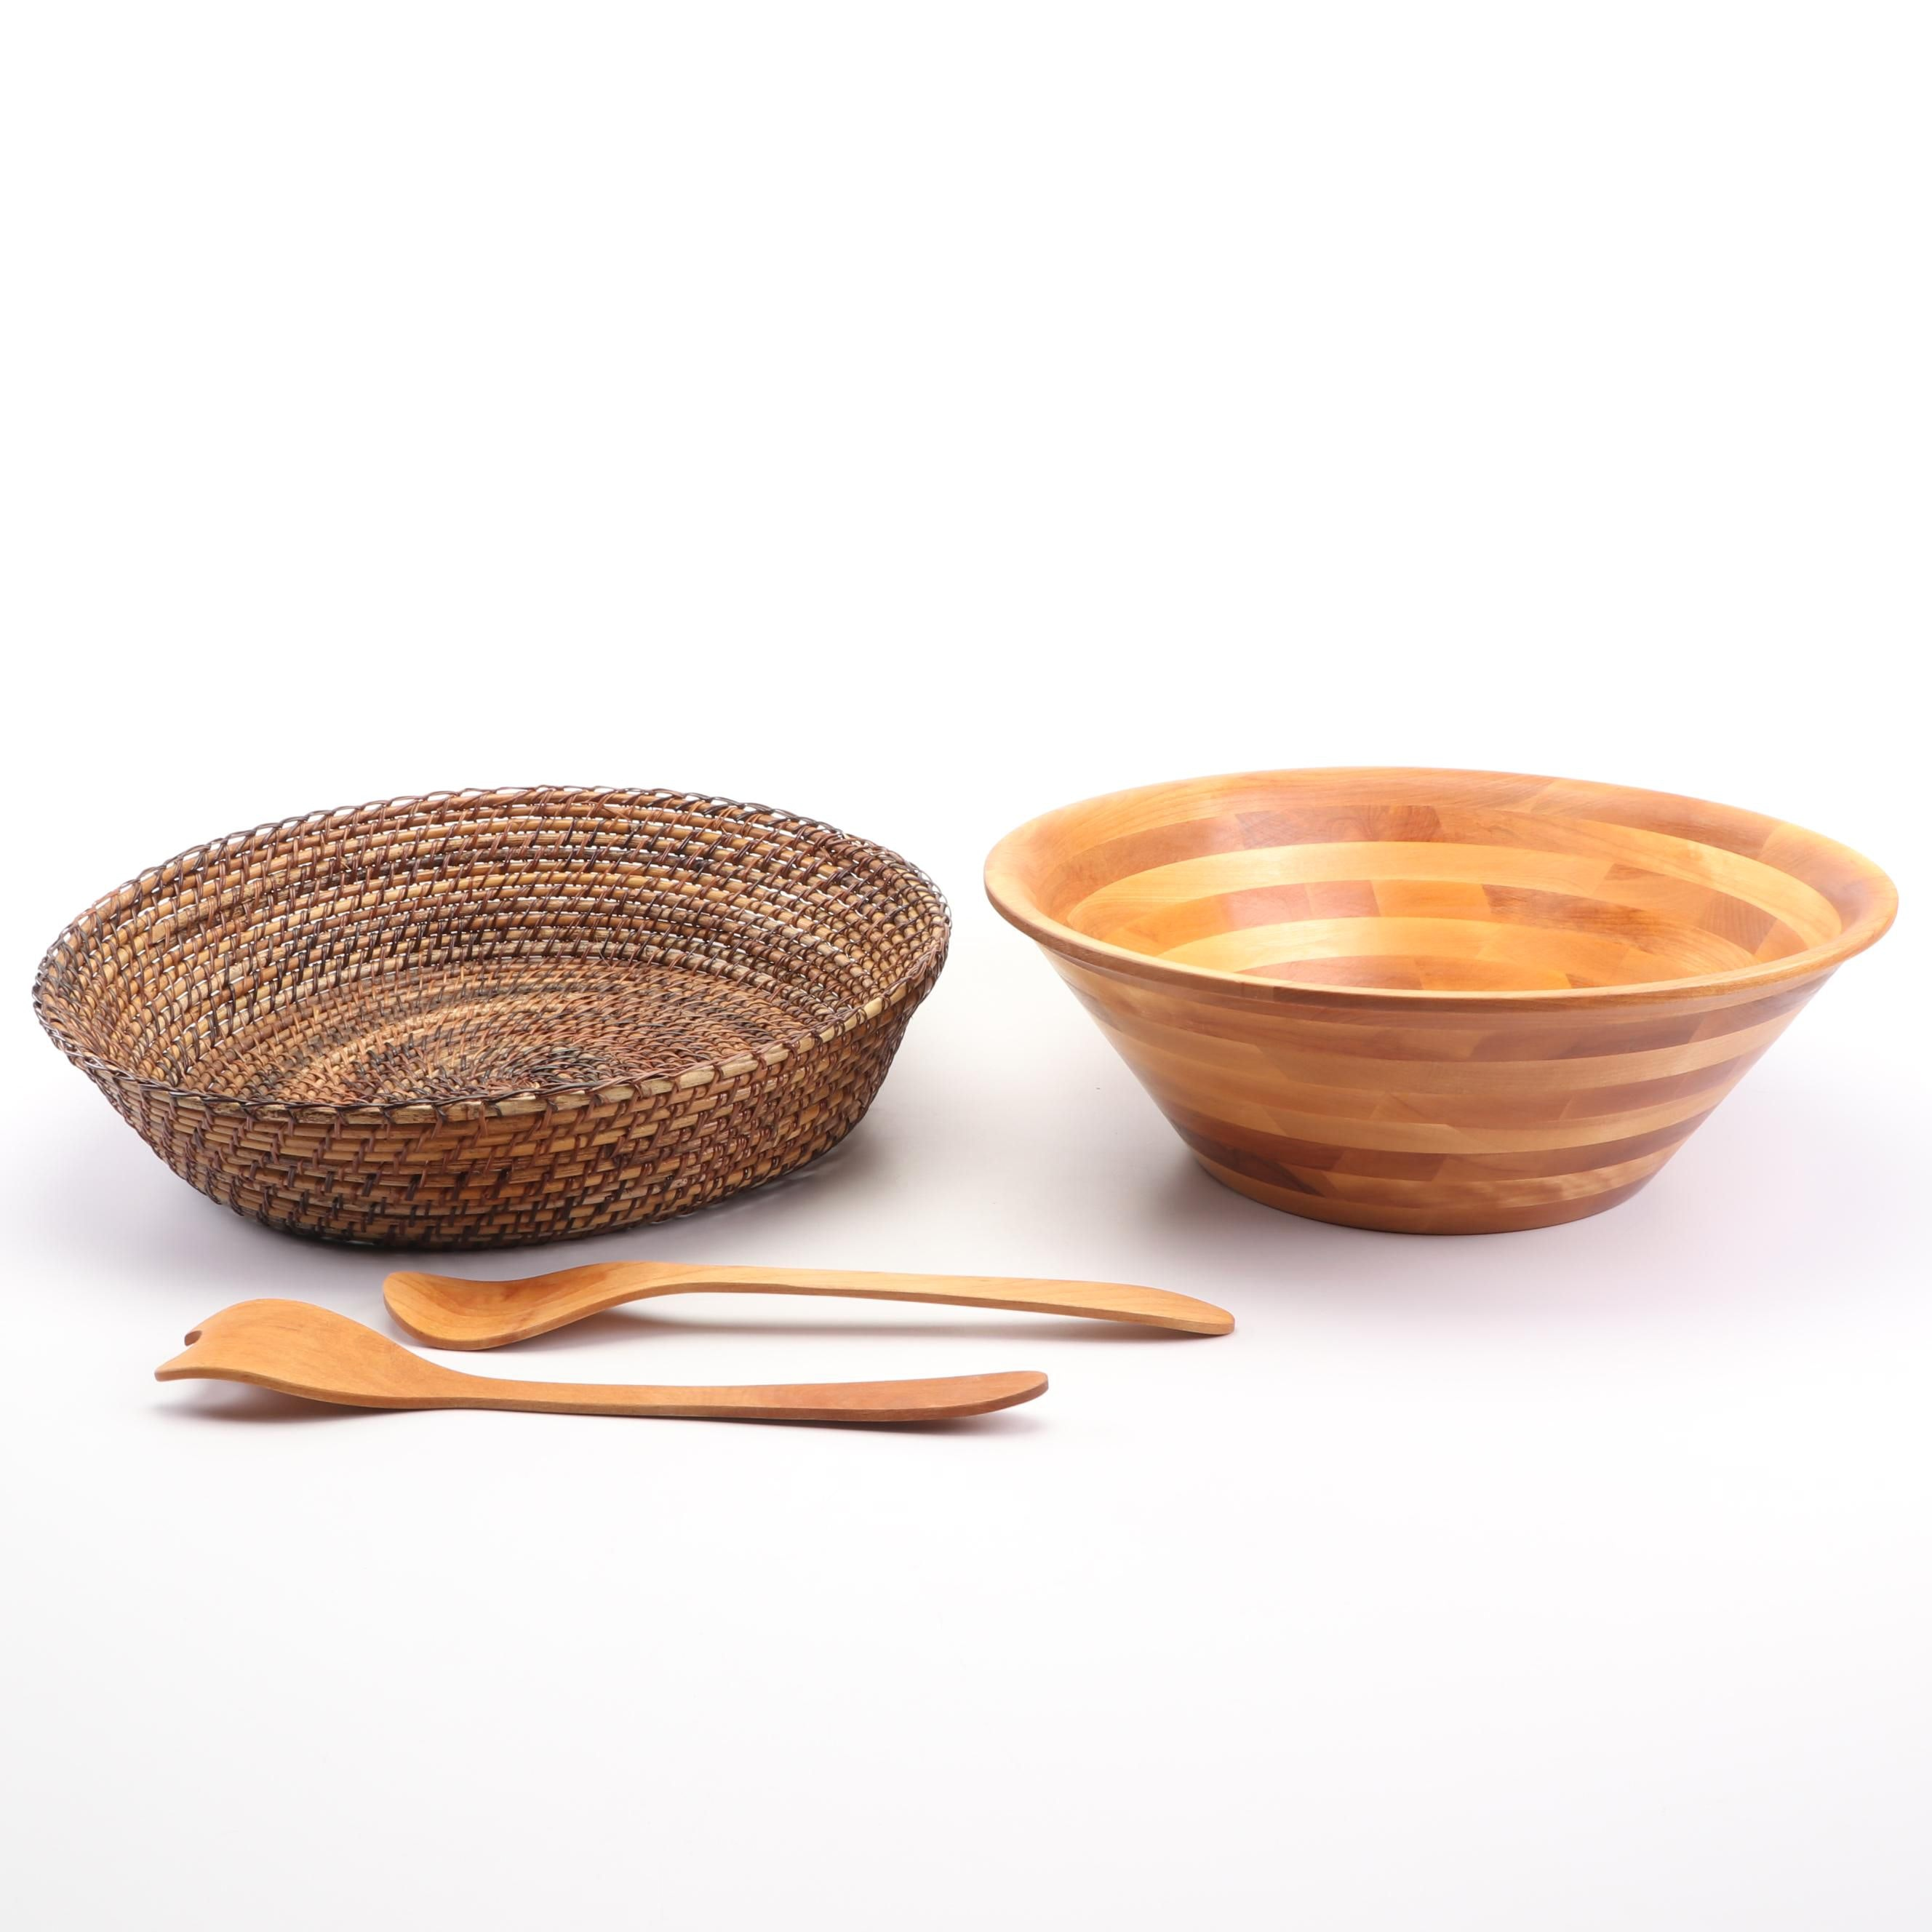 John McLeod Wooden Salad Bowl, Servers, and Woven Basket by Williams-Sonoma